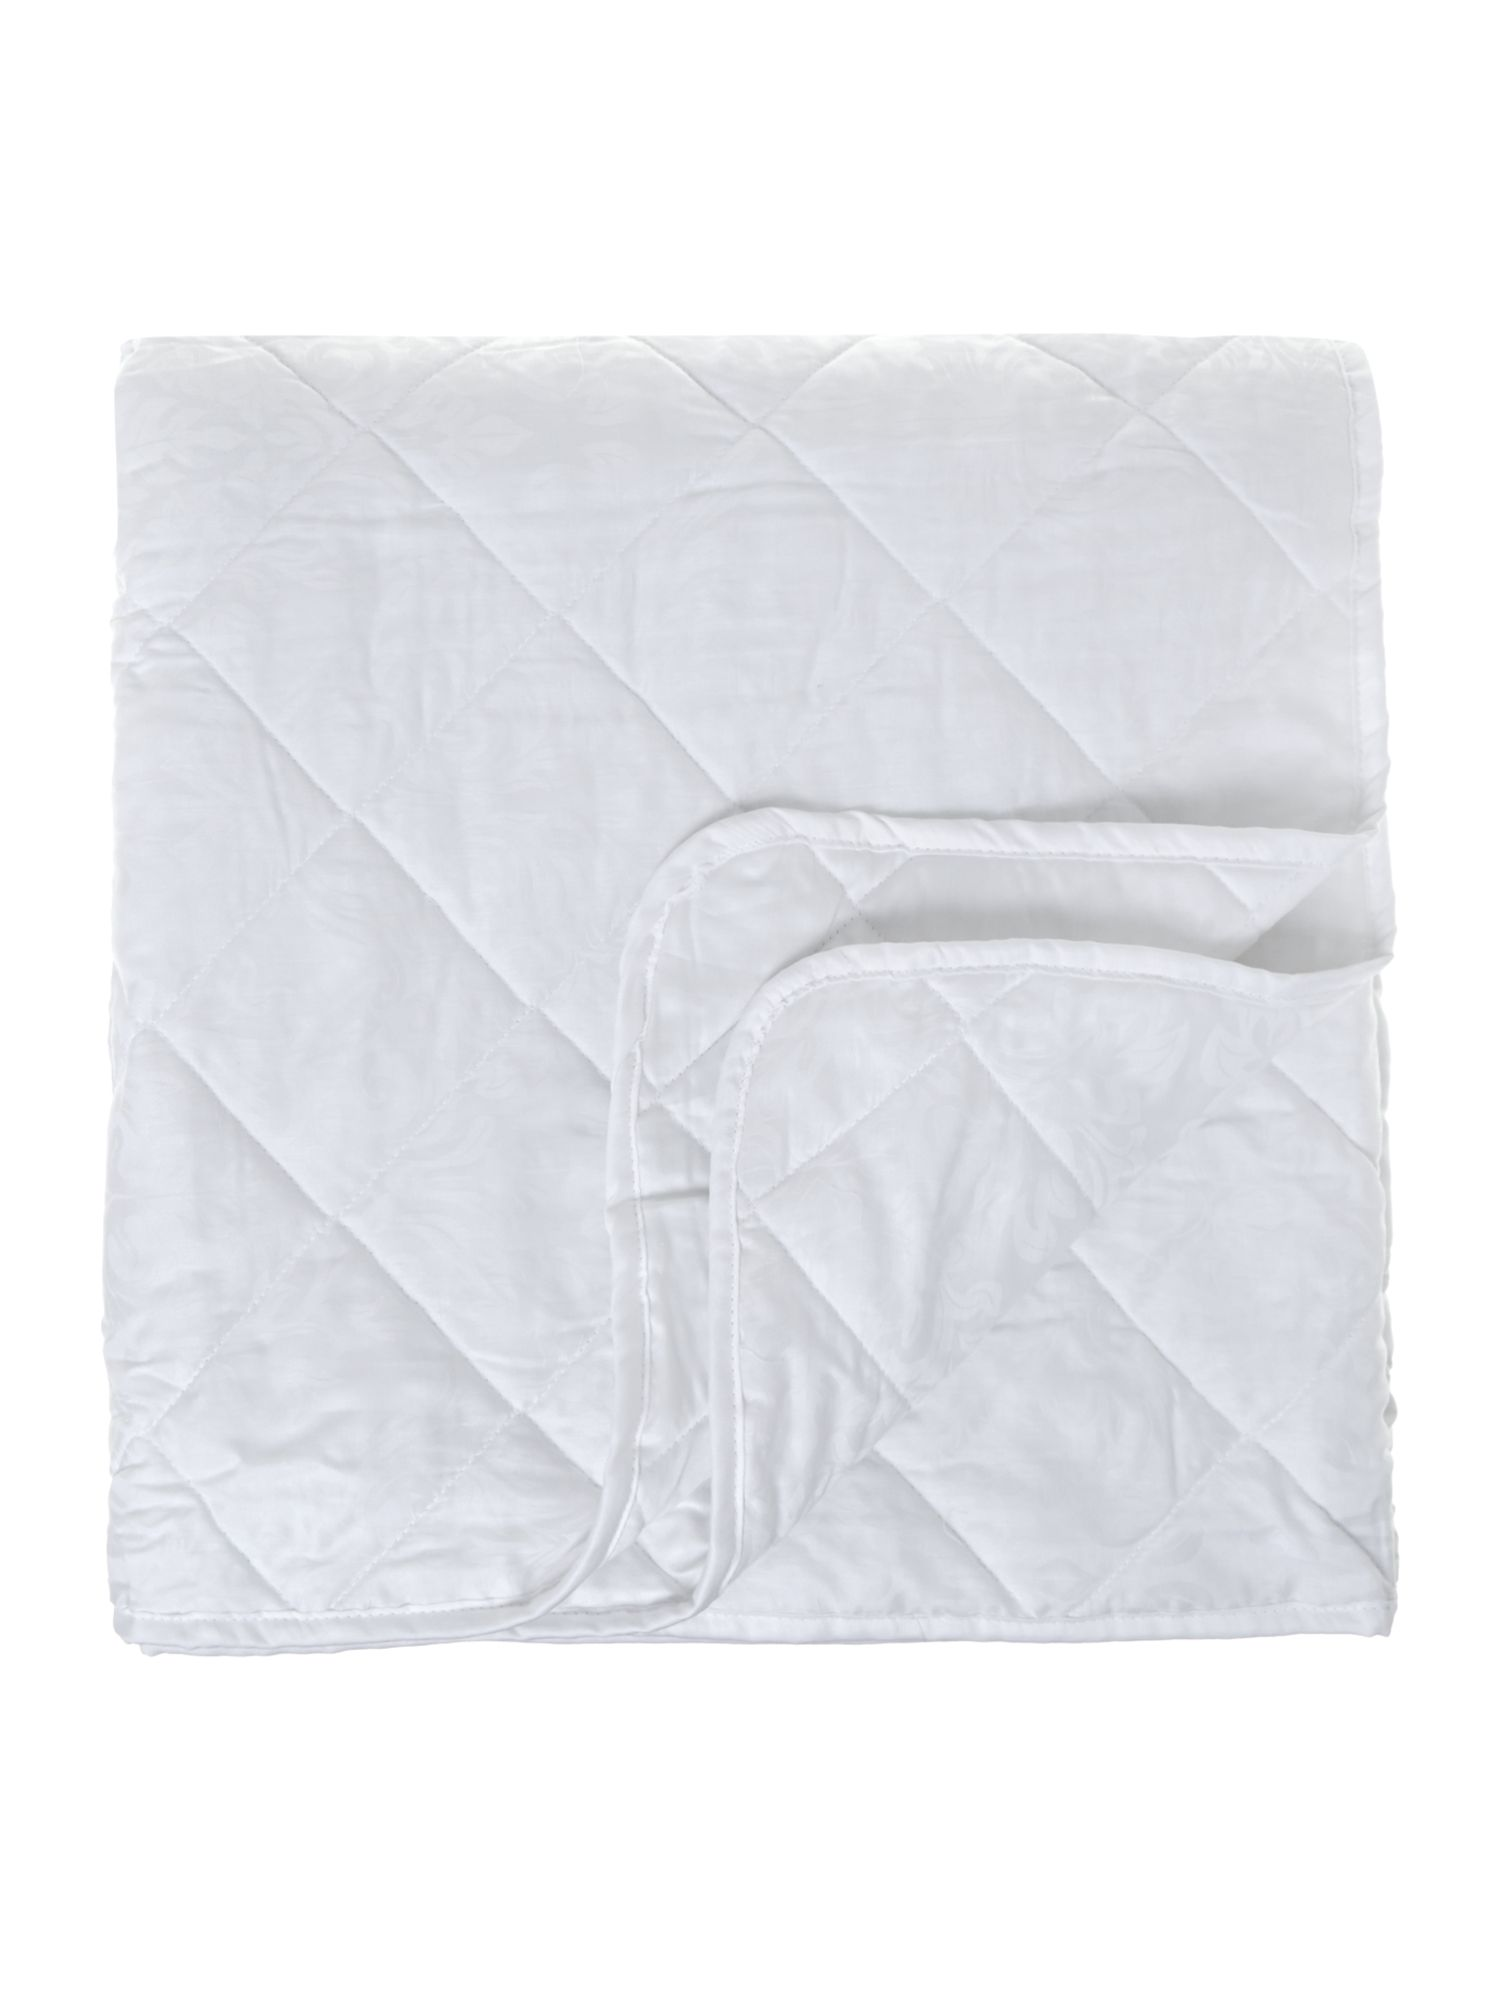 Damask quilted bedspread white